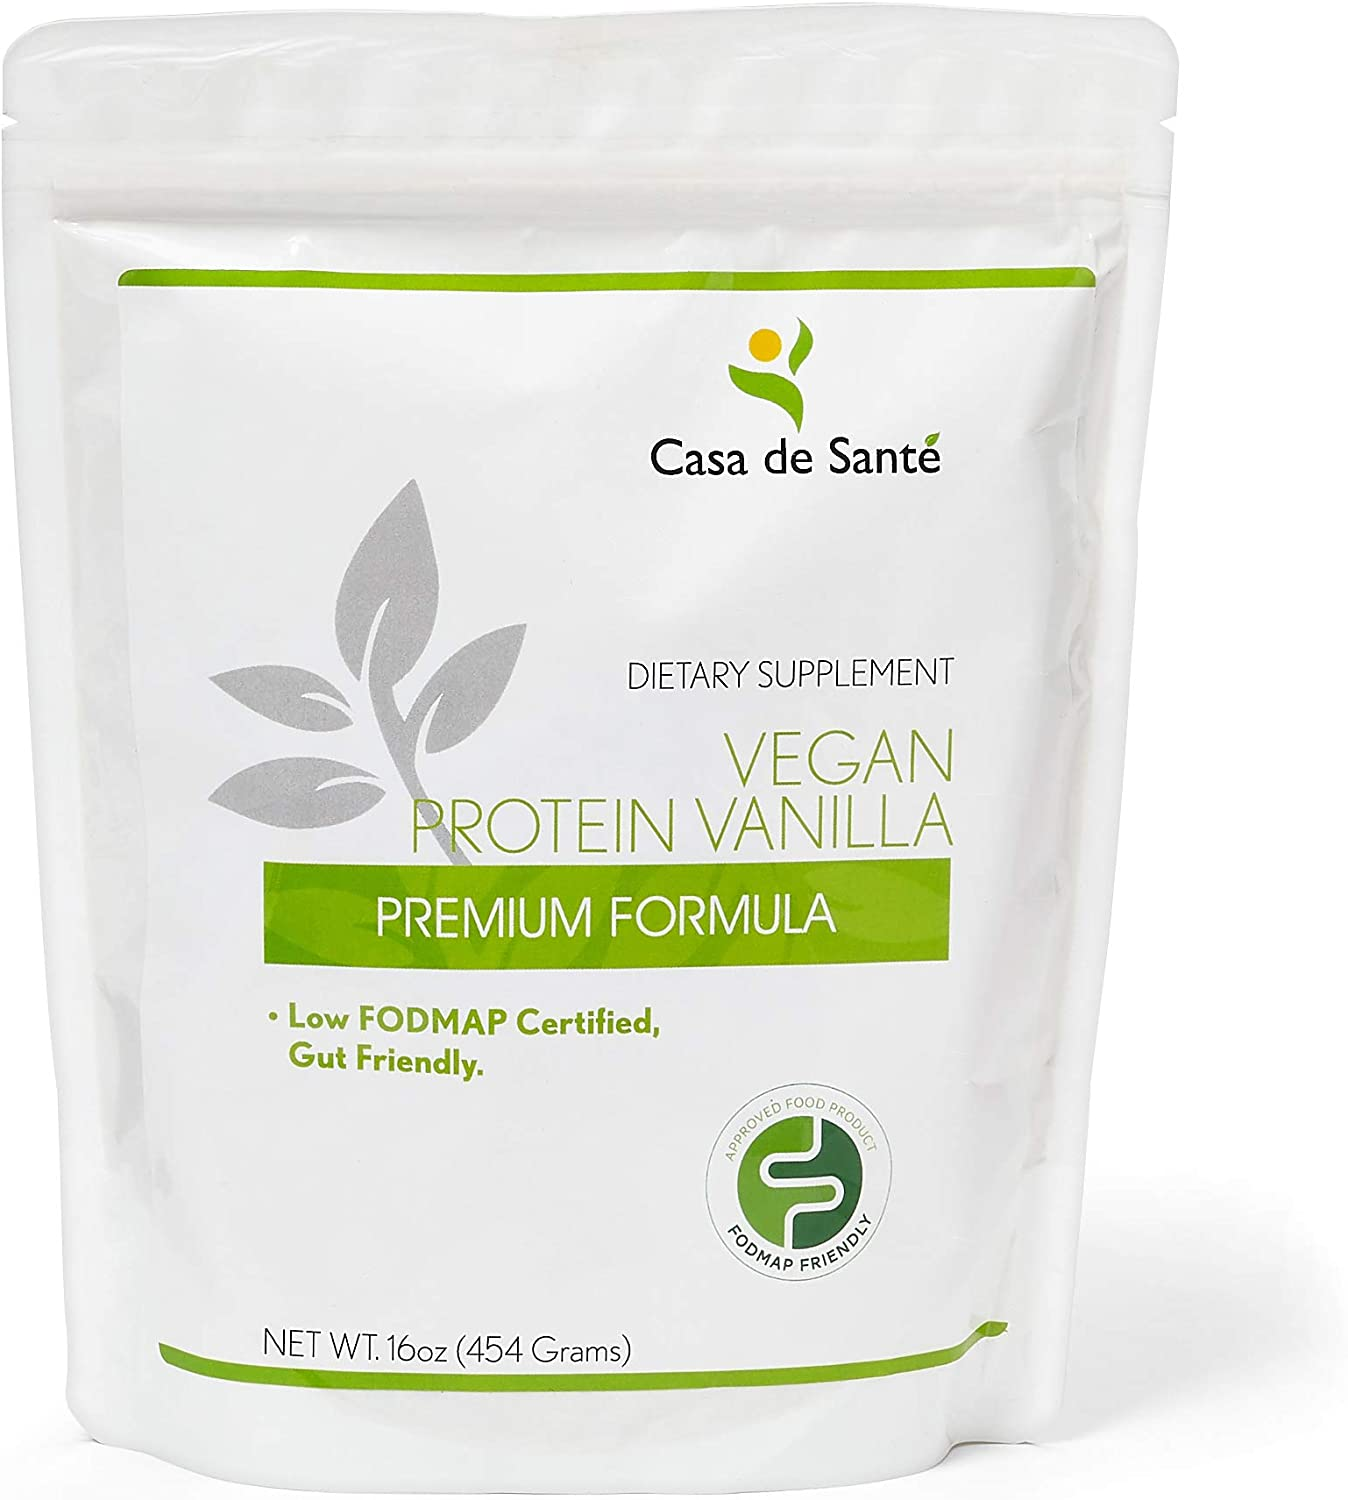 Low FODMAP Certified Vegan Protein Powder for IBS & SIBO Gluten & Dairy Free Soy Free Sugar & Grain Free Low Carb All Natural Gut Health Food, Superfoods, Stevia, Monk Fruit - Casa de Sante (Vanilla)